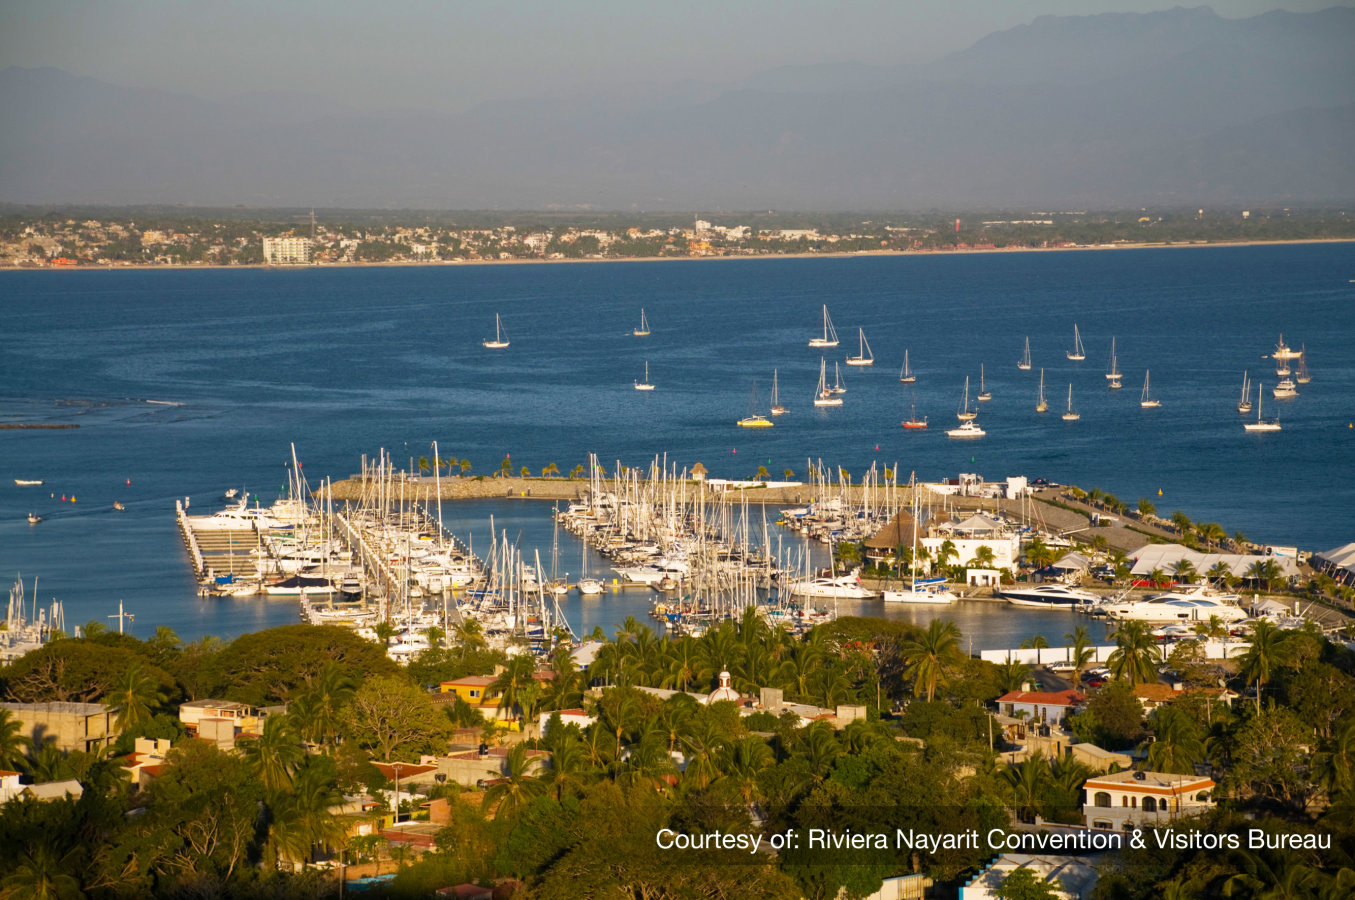 Riviera Nayarit, a favorite destination by celebrities in 2015